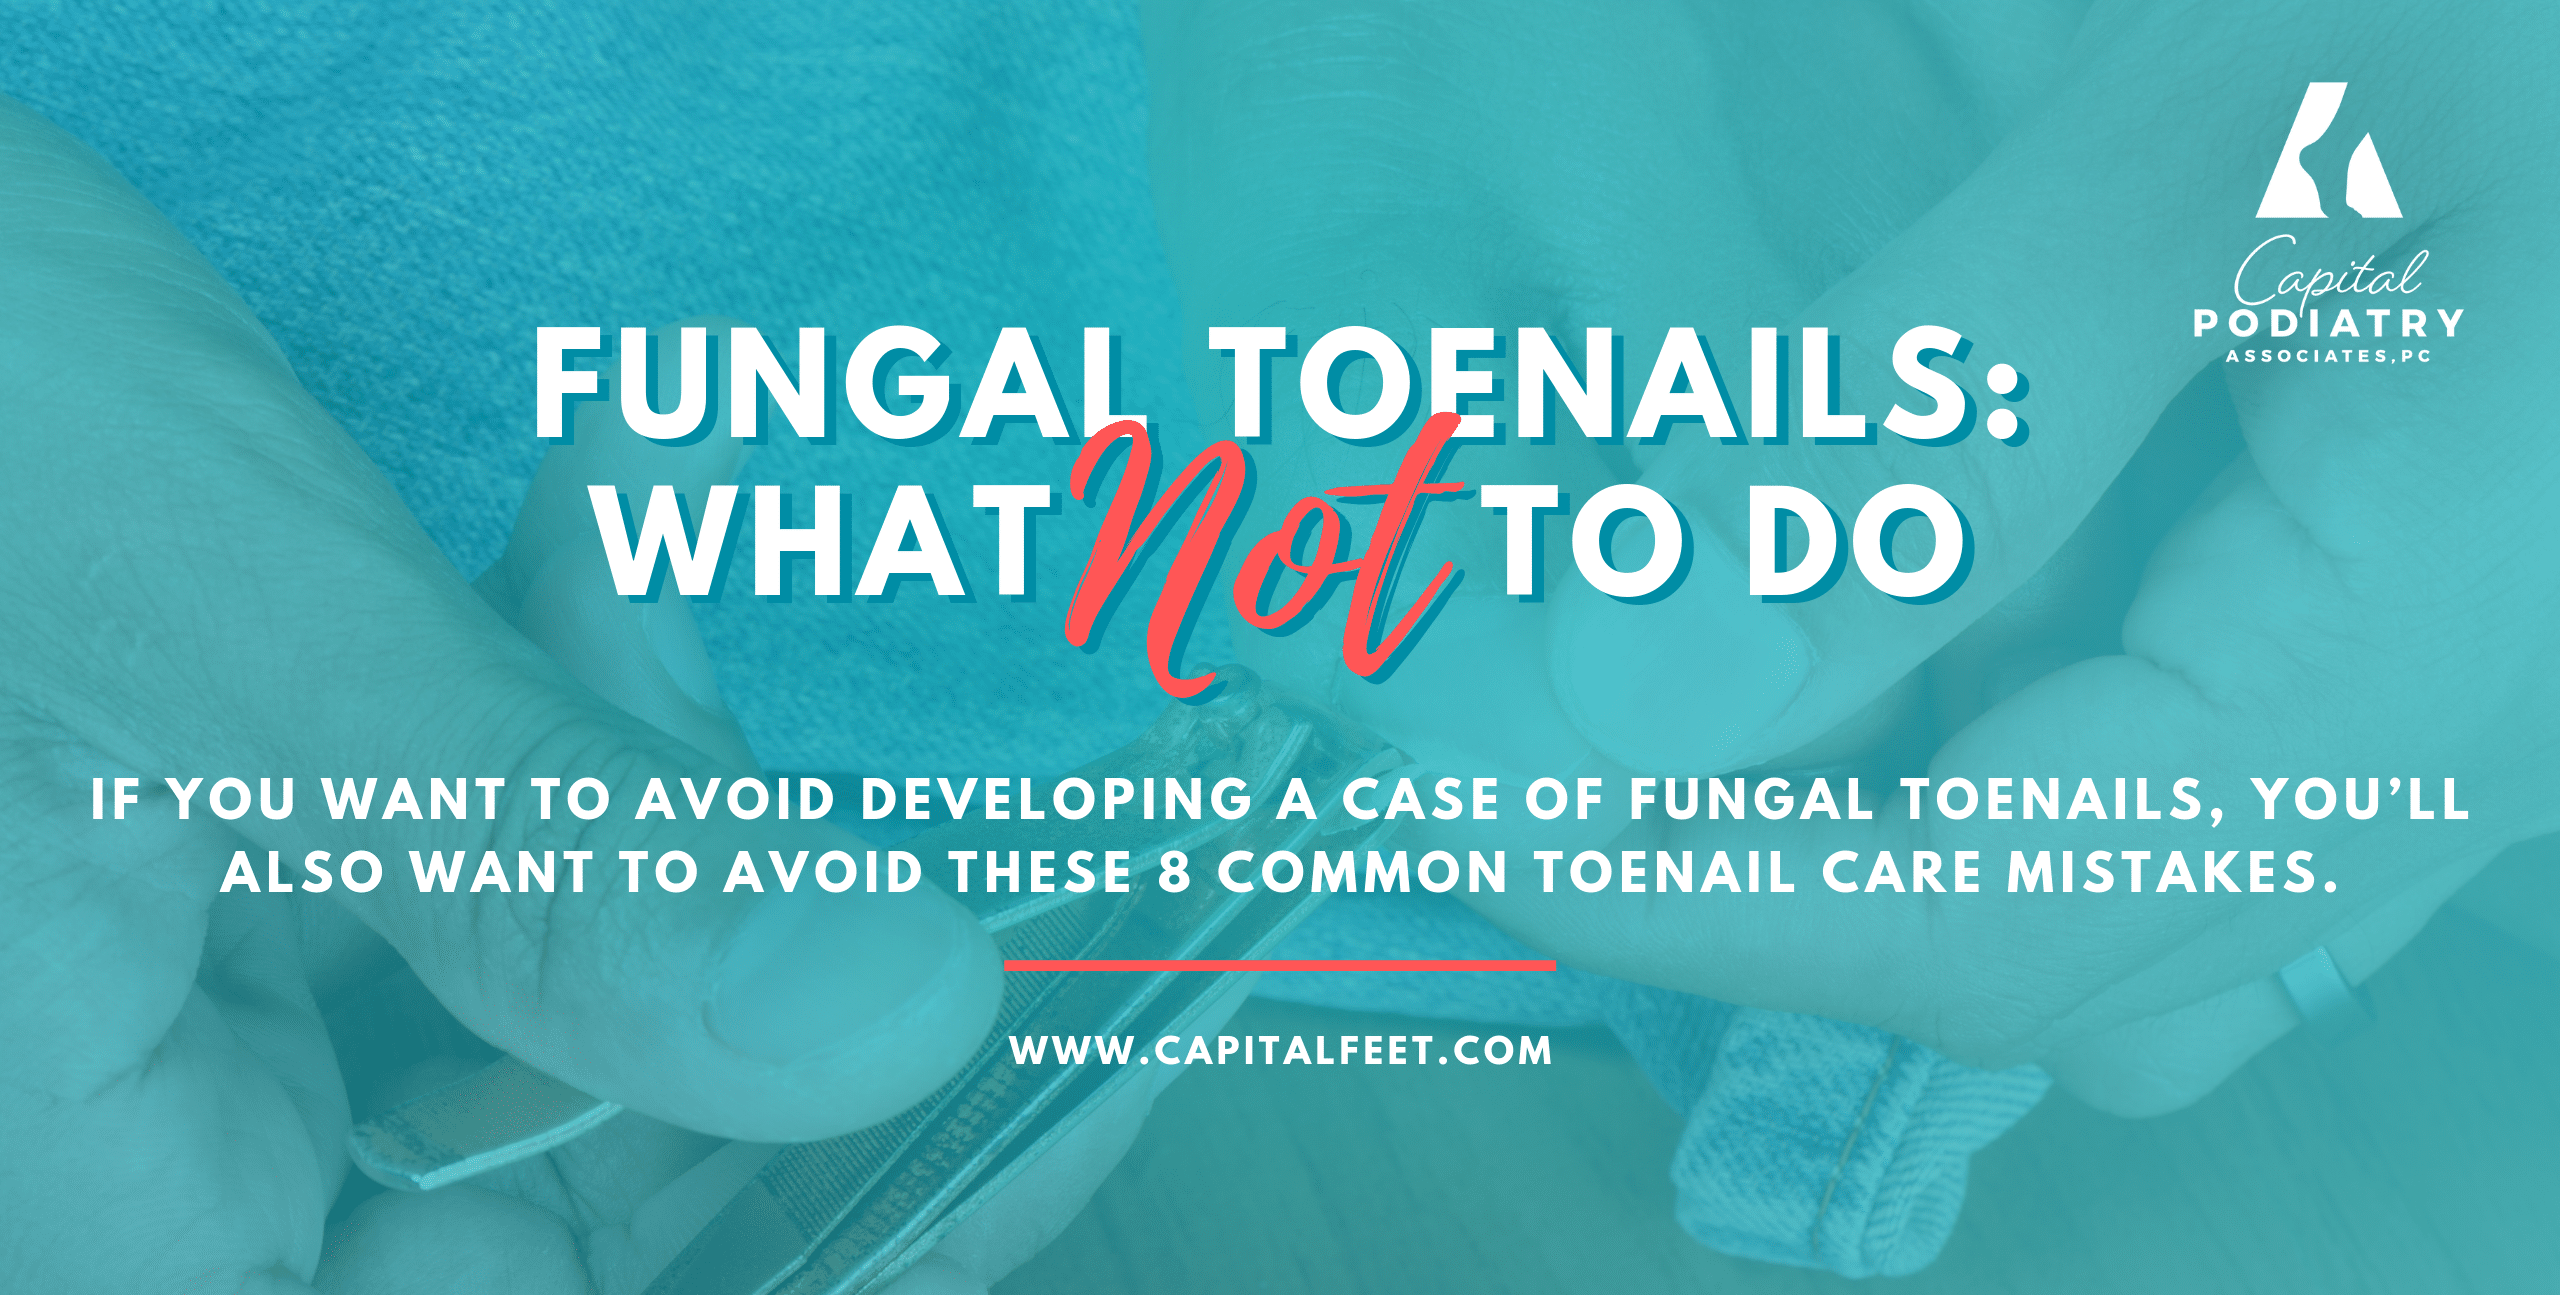 Gilmore - Fungal Toenails: What Not To Do